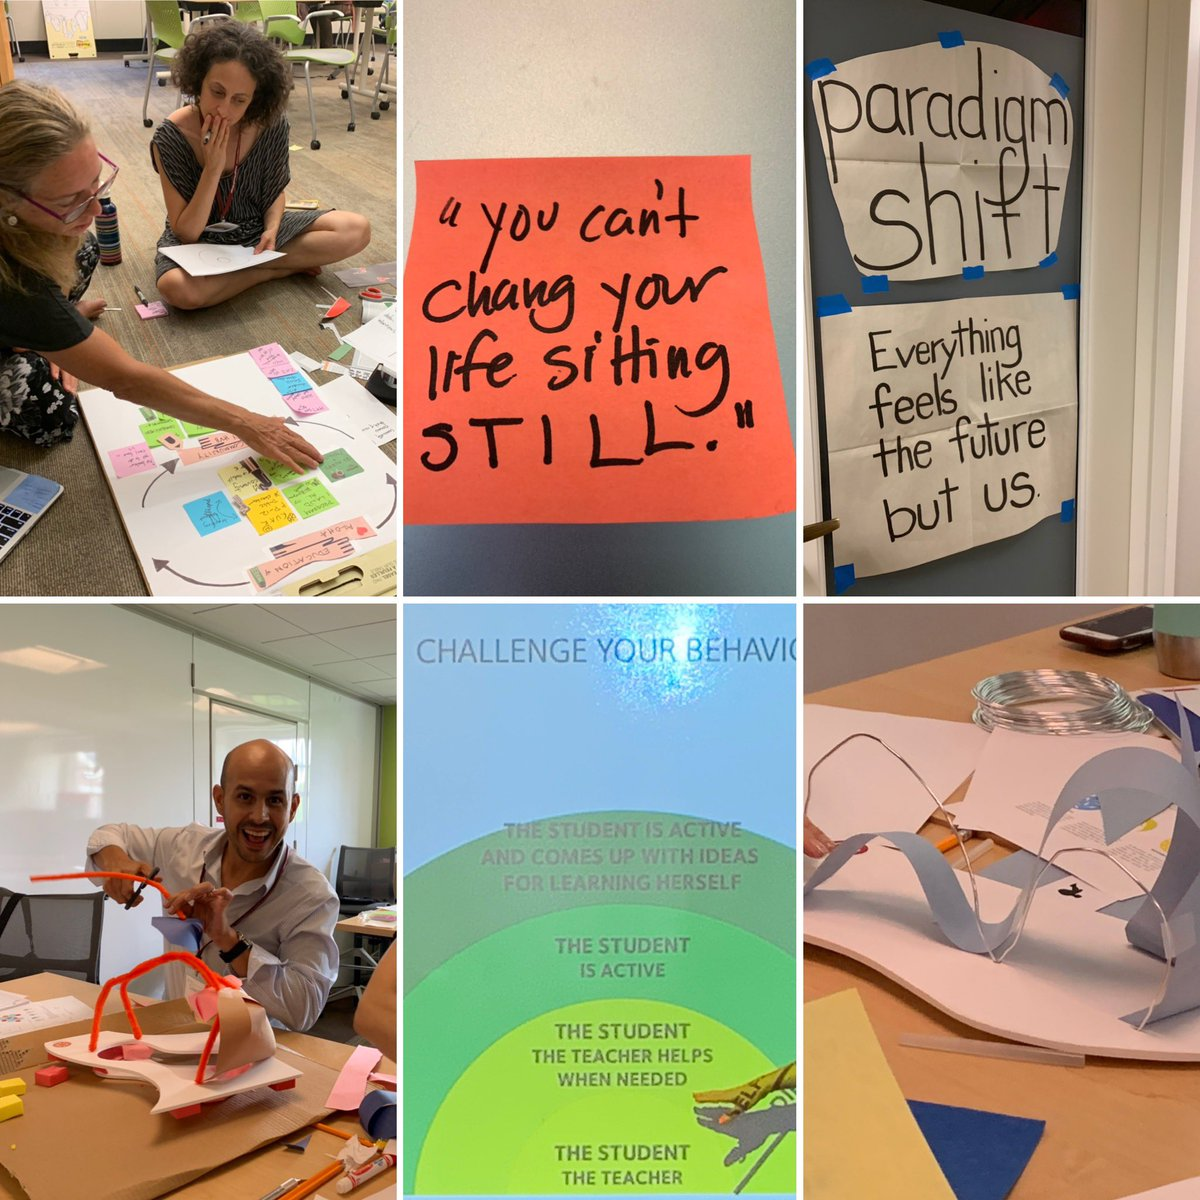 @hgse #profedLEFT challenged assumptions w purposeful play w @RosanBosch inspired thinking all day!